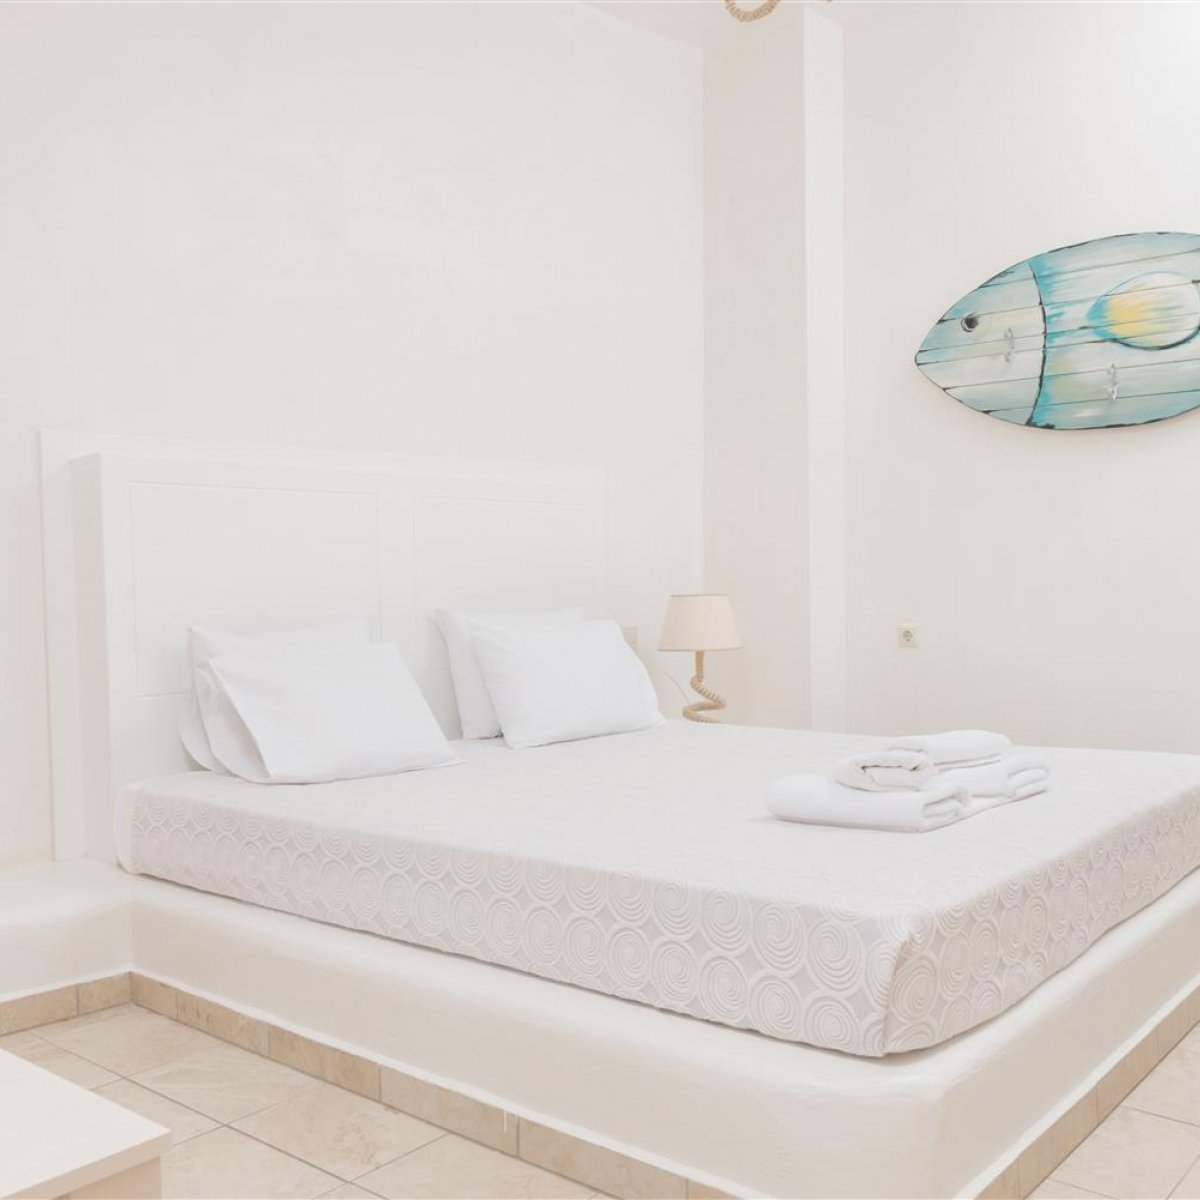 Hotel Sunshine Matala - 1 Bedroom Onar Suite